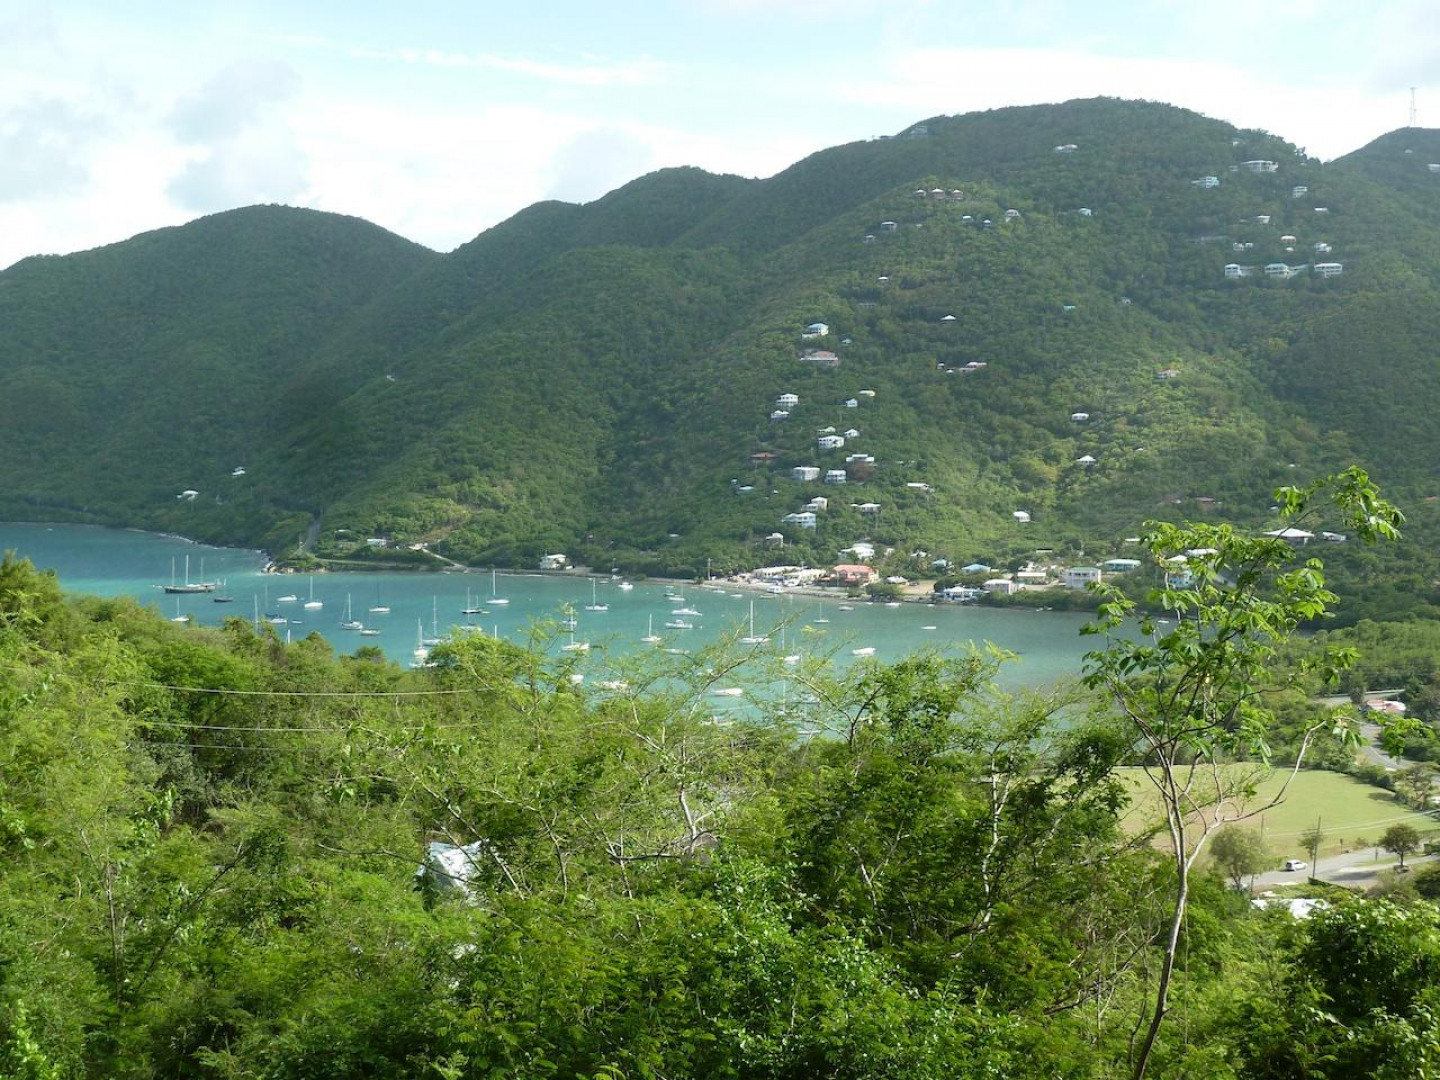 8-35 Emmaus, St. John, USVI 00830, MLS# 17-201 | Holiday Homes